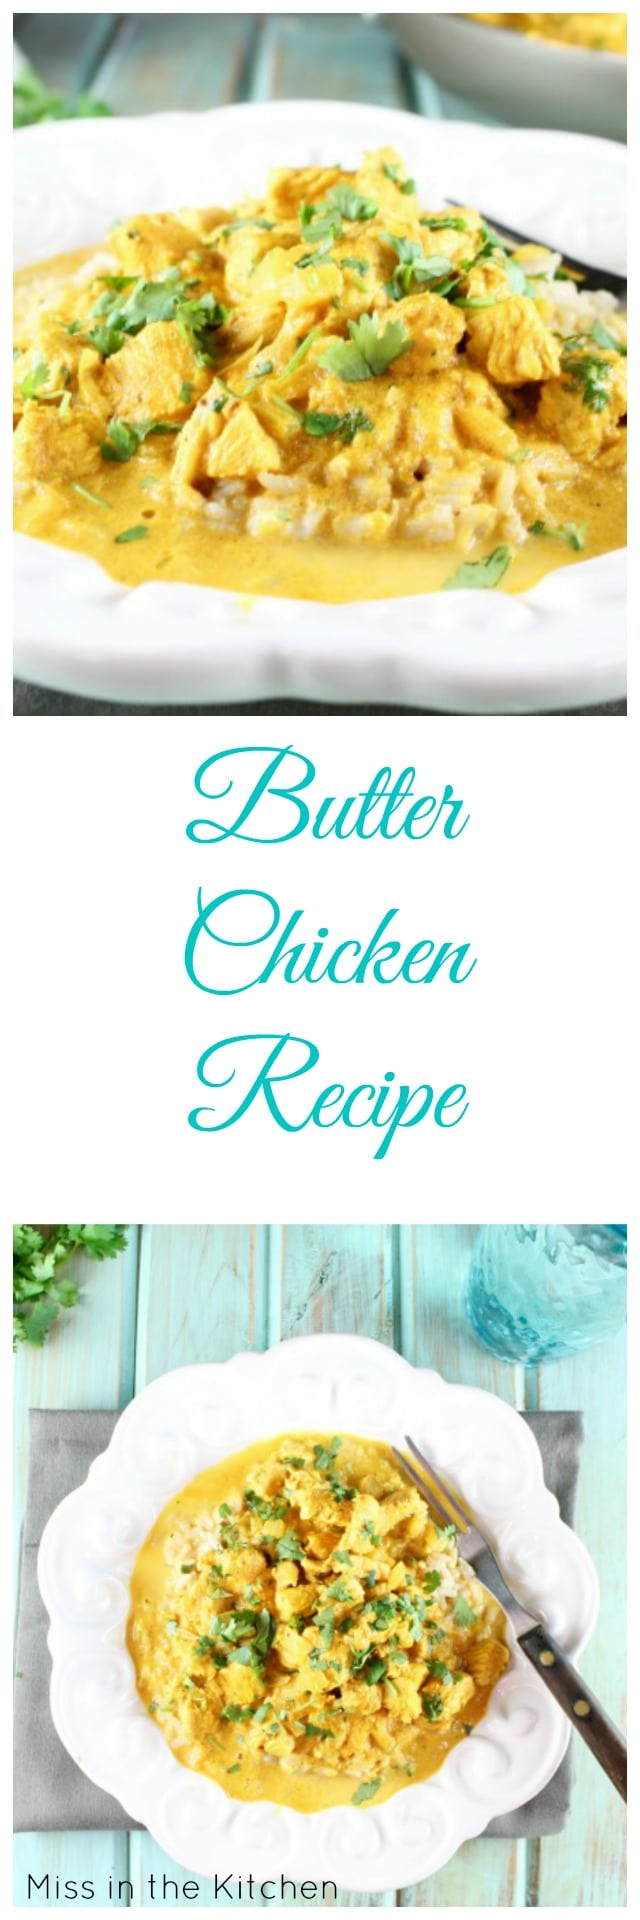 Butter Chicken Recipe from MissintheKitchen #ad #TeamFarberware